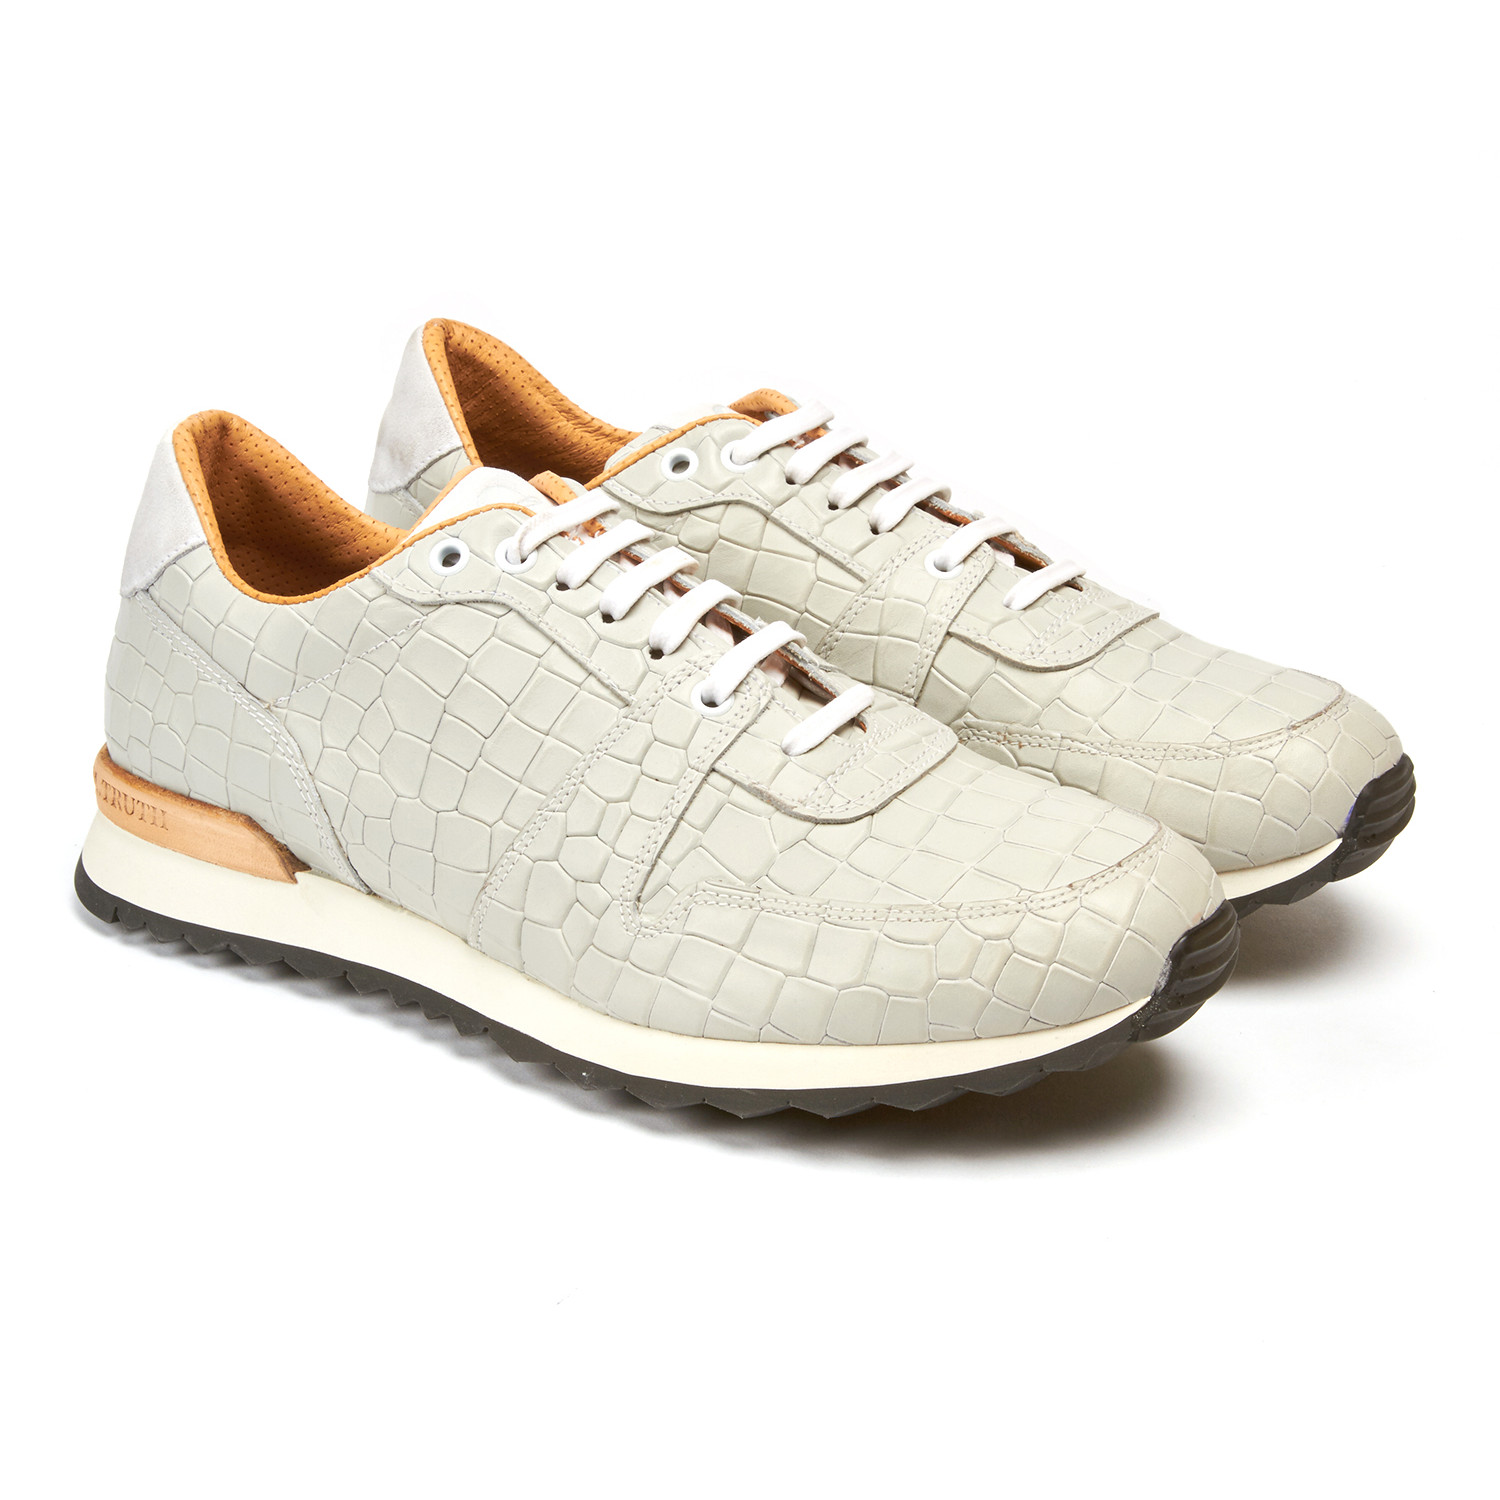 0f06cae2e7a13 Amazon // White Croc Print (US: 8) - Robert Graham Shoes - Touch of ...